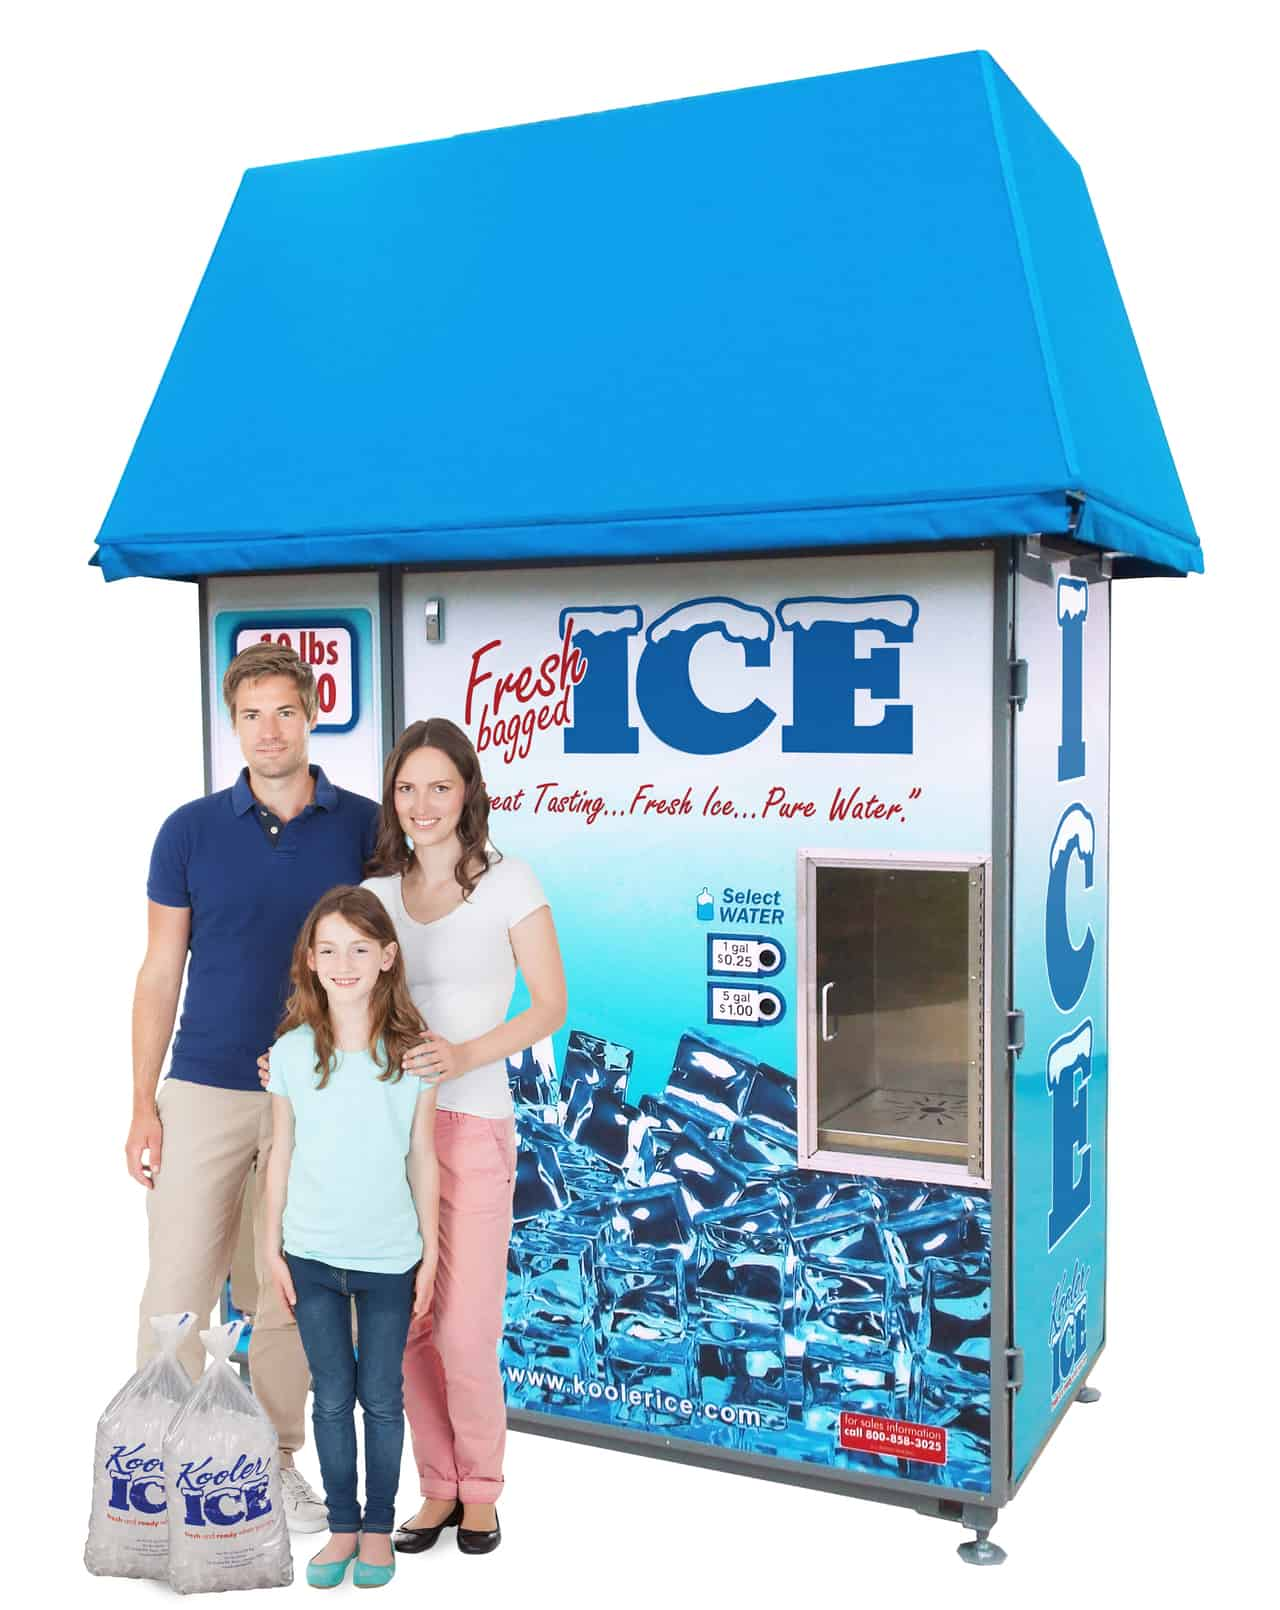 ice vending machine, ice vending, ice vending machine business, ice vending business